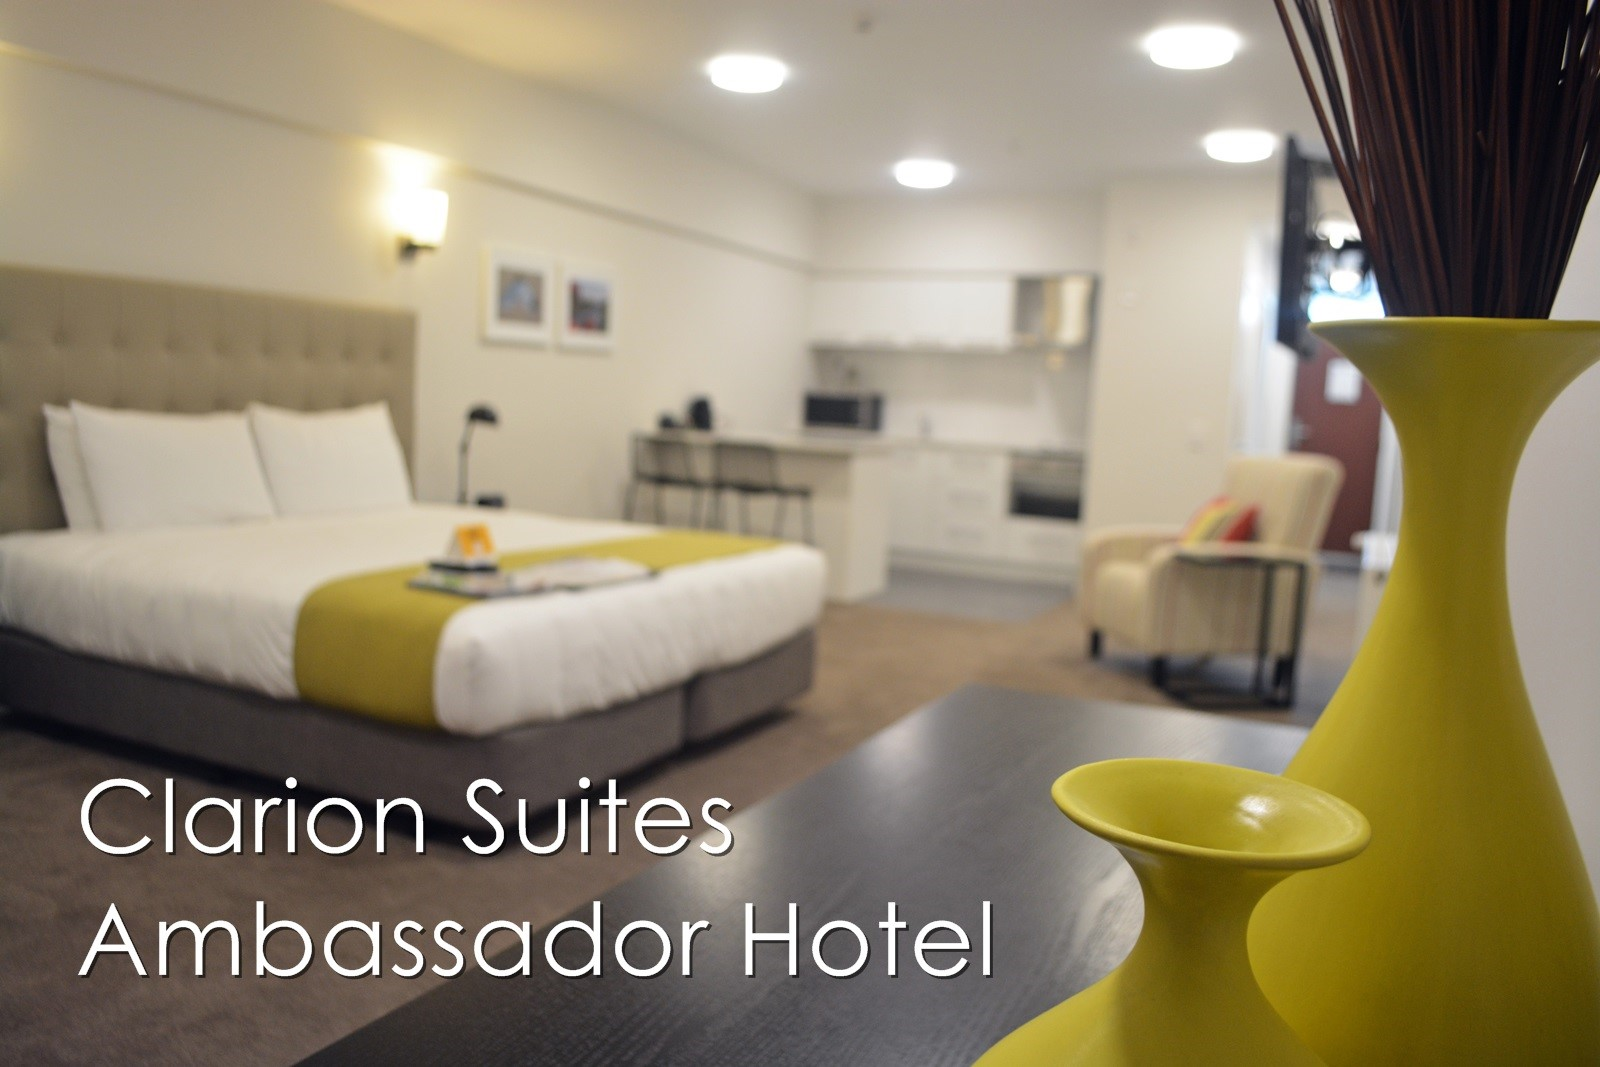 Clarion Suites @ The Ambassador Hotel Wins Gold